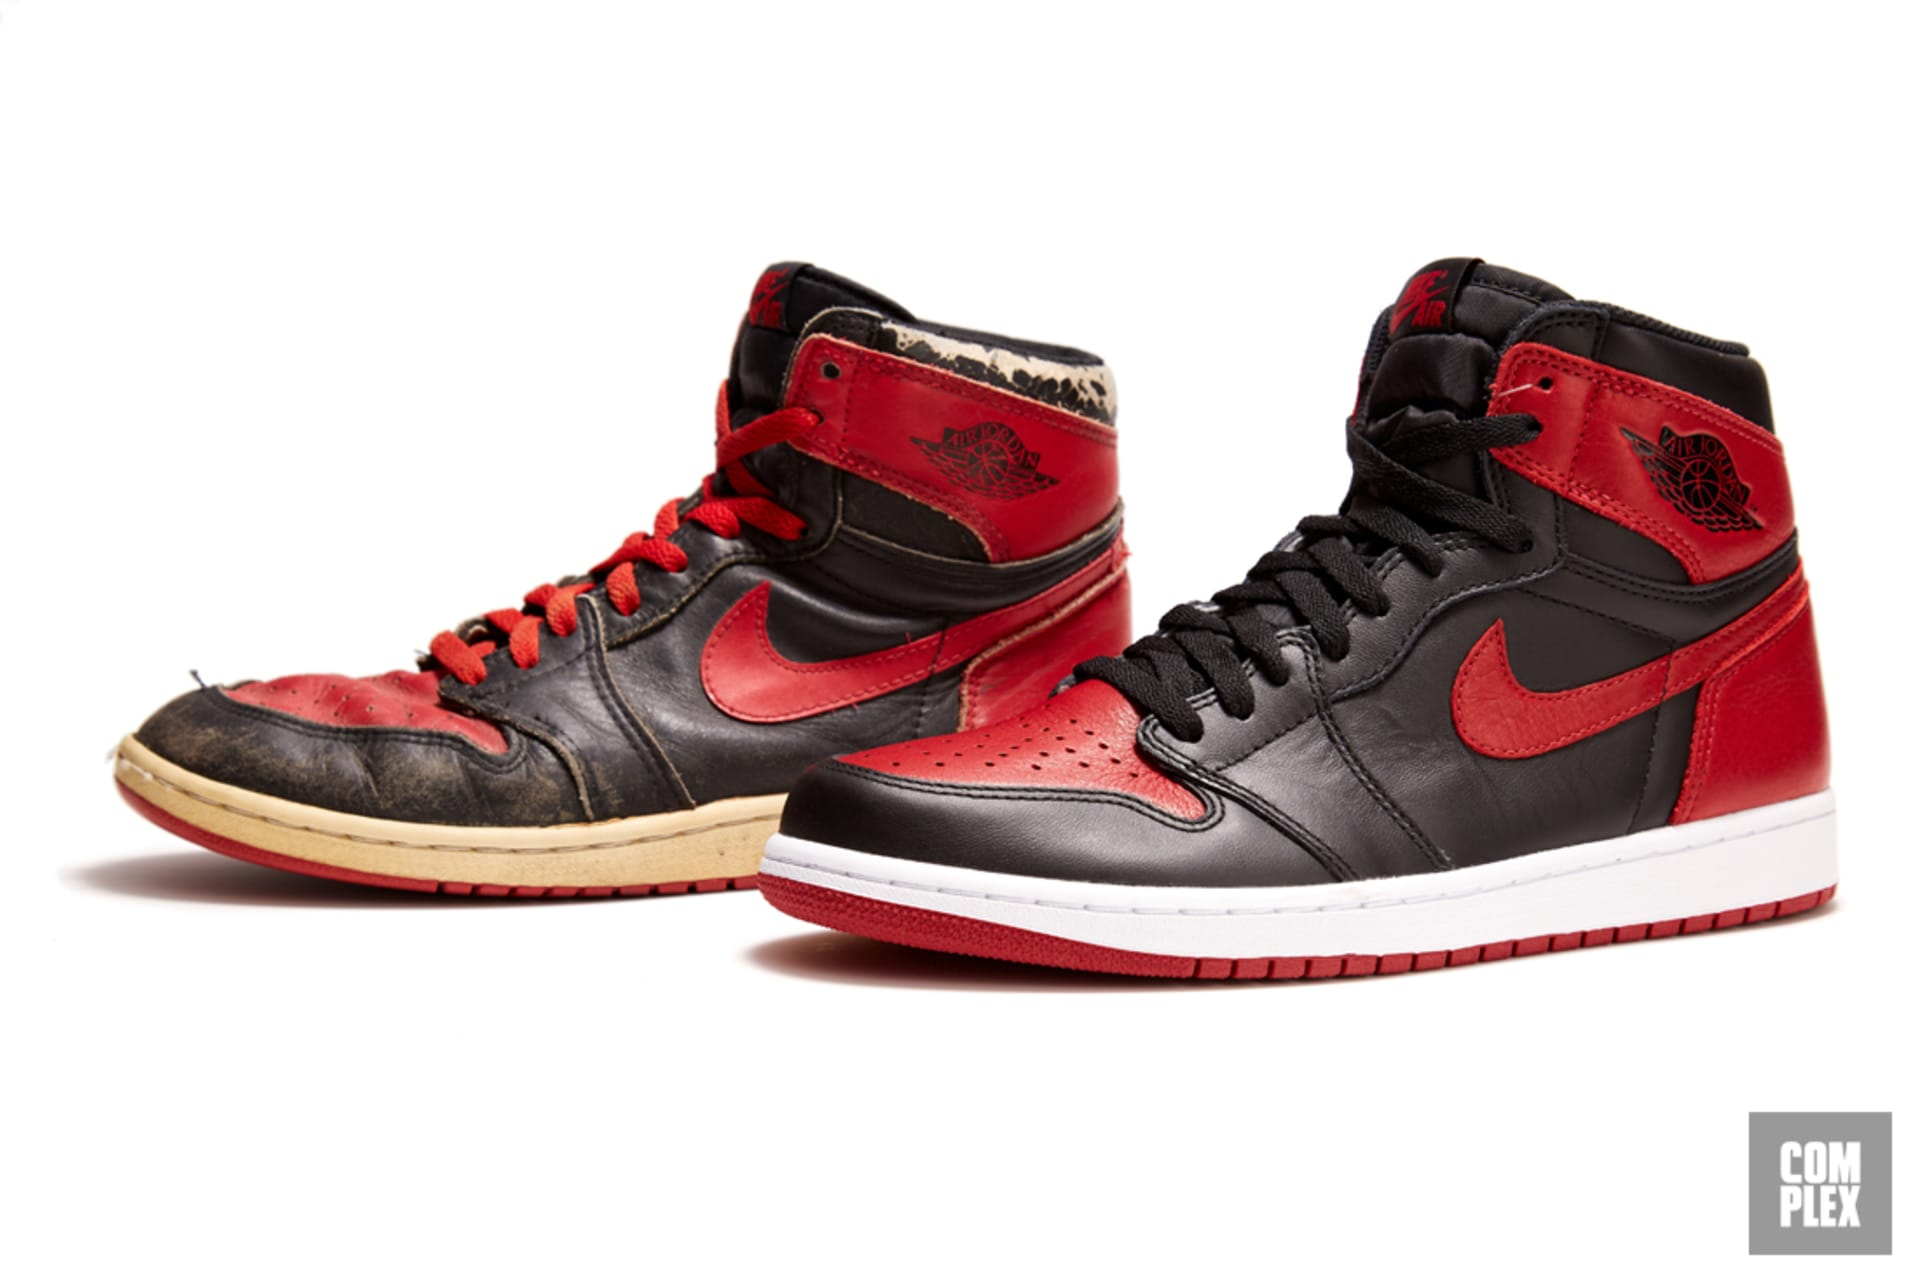 9cbf1ba11a0962 The Evolution of the Black and Red Air Jordan 1